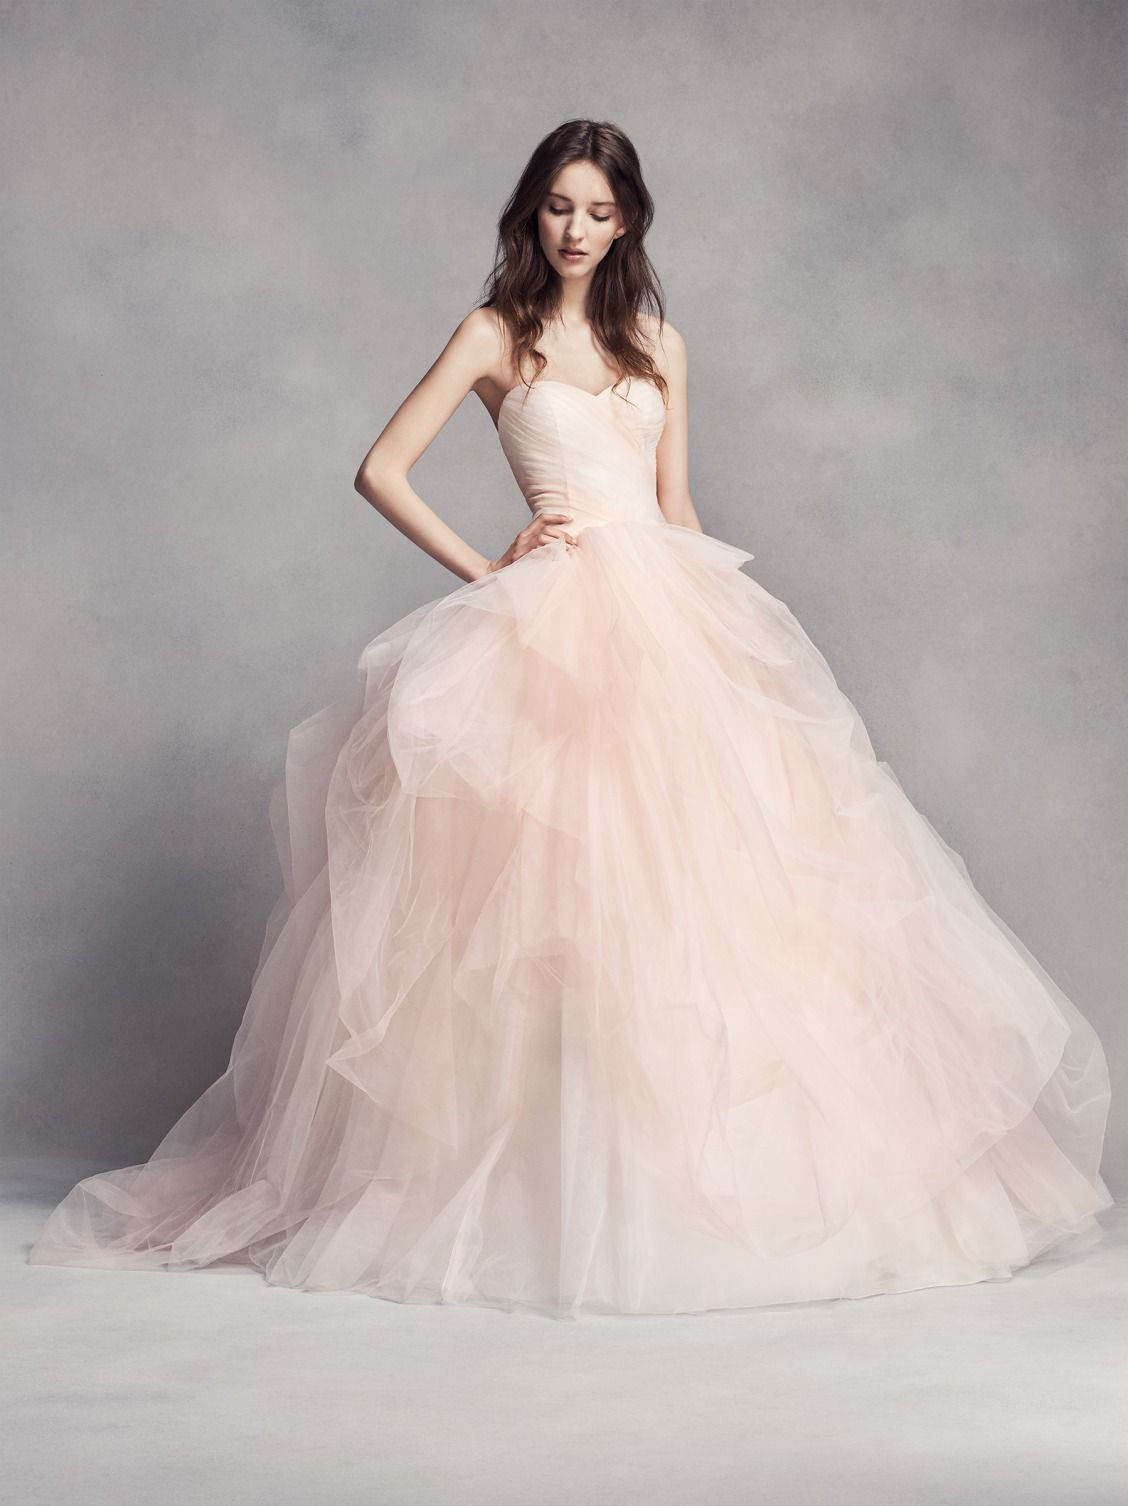 White By Vera Wang Ombre Tulle Wedding Dress David S Bridal Ball Gowns Wedding Ball Gown Wedding Dress Wedding Dress Inspiration [ 1506 x 1128 Pixel ]